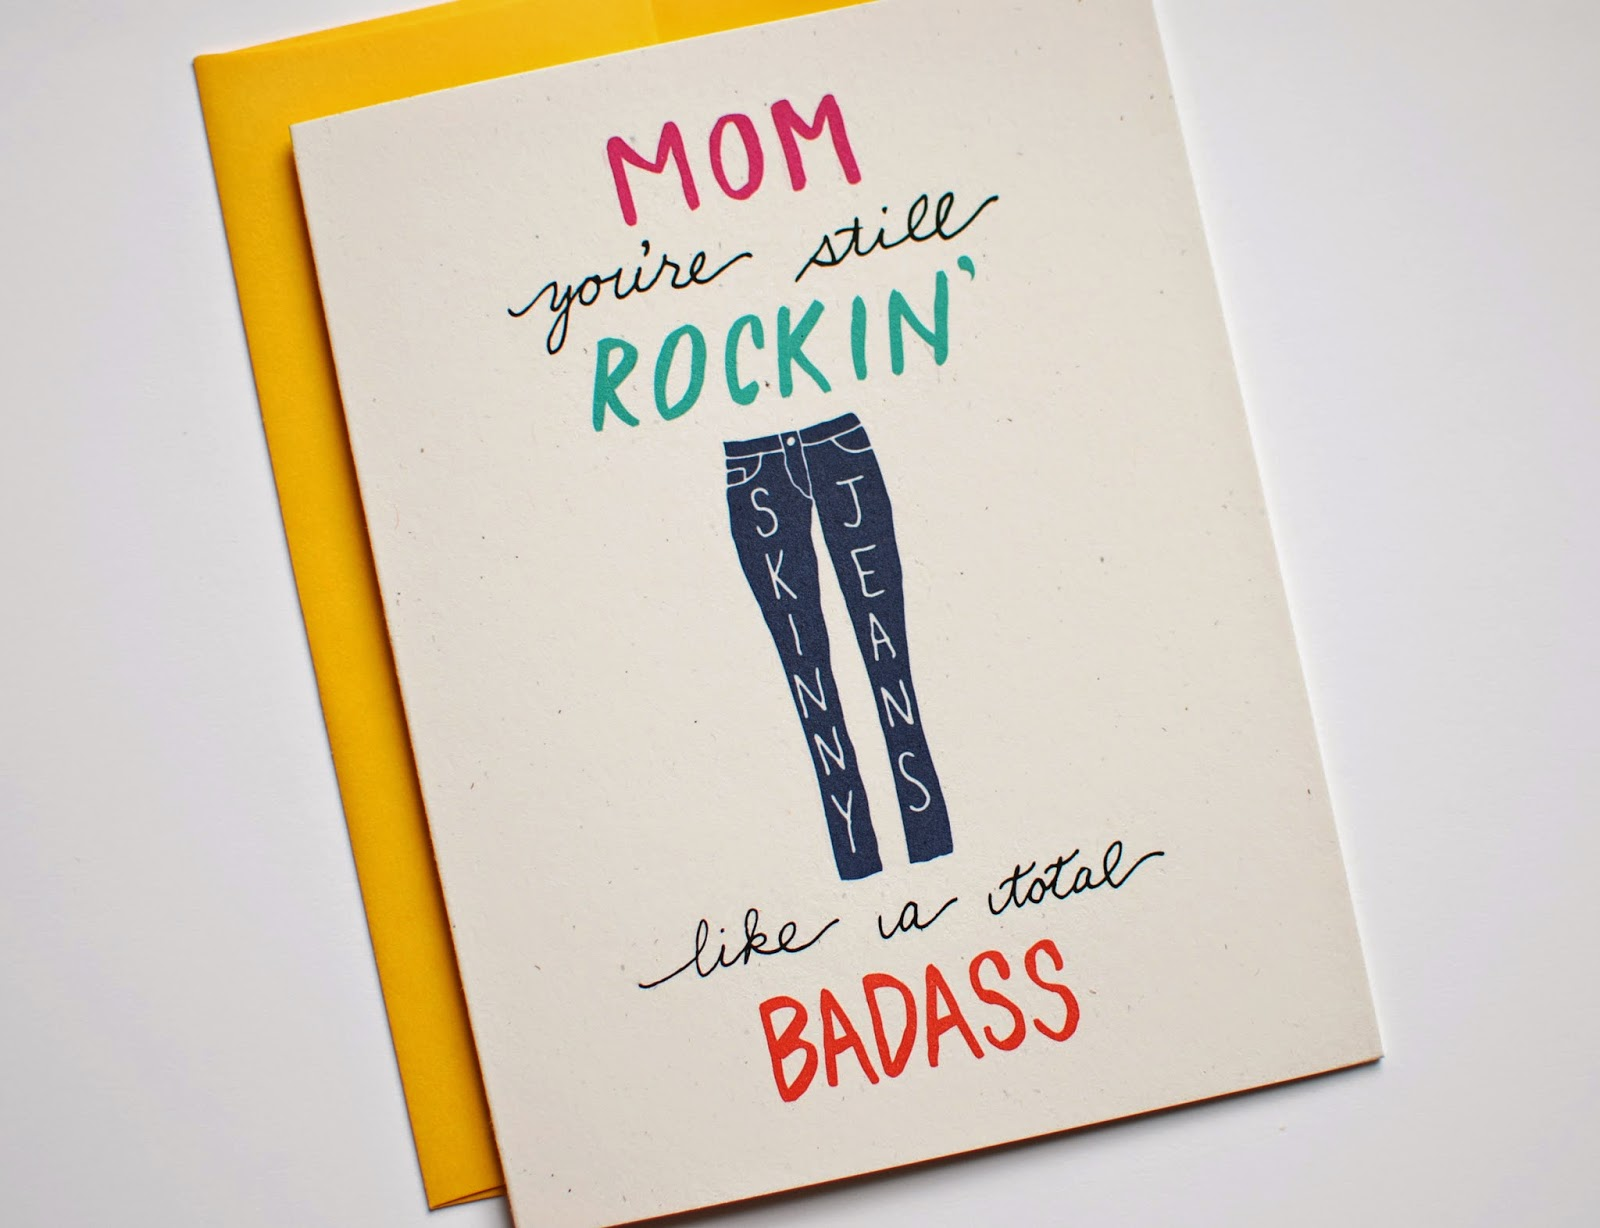 https://www.etsy.com/listing/183122899/funny-mothers-day-card-mothers-day-card?ref=related-0